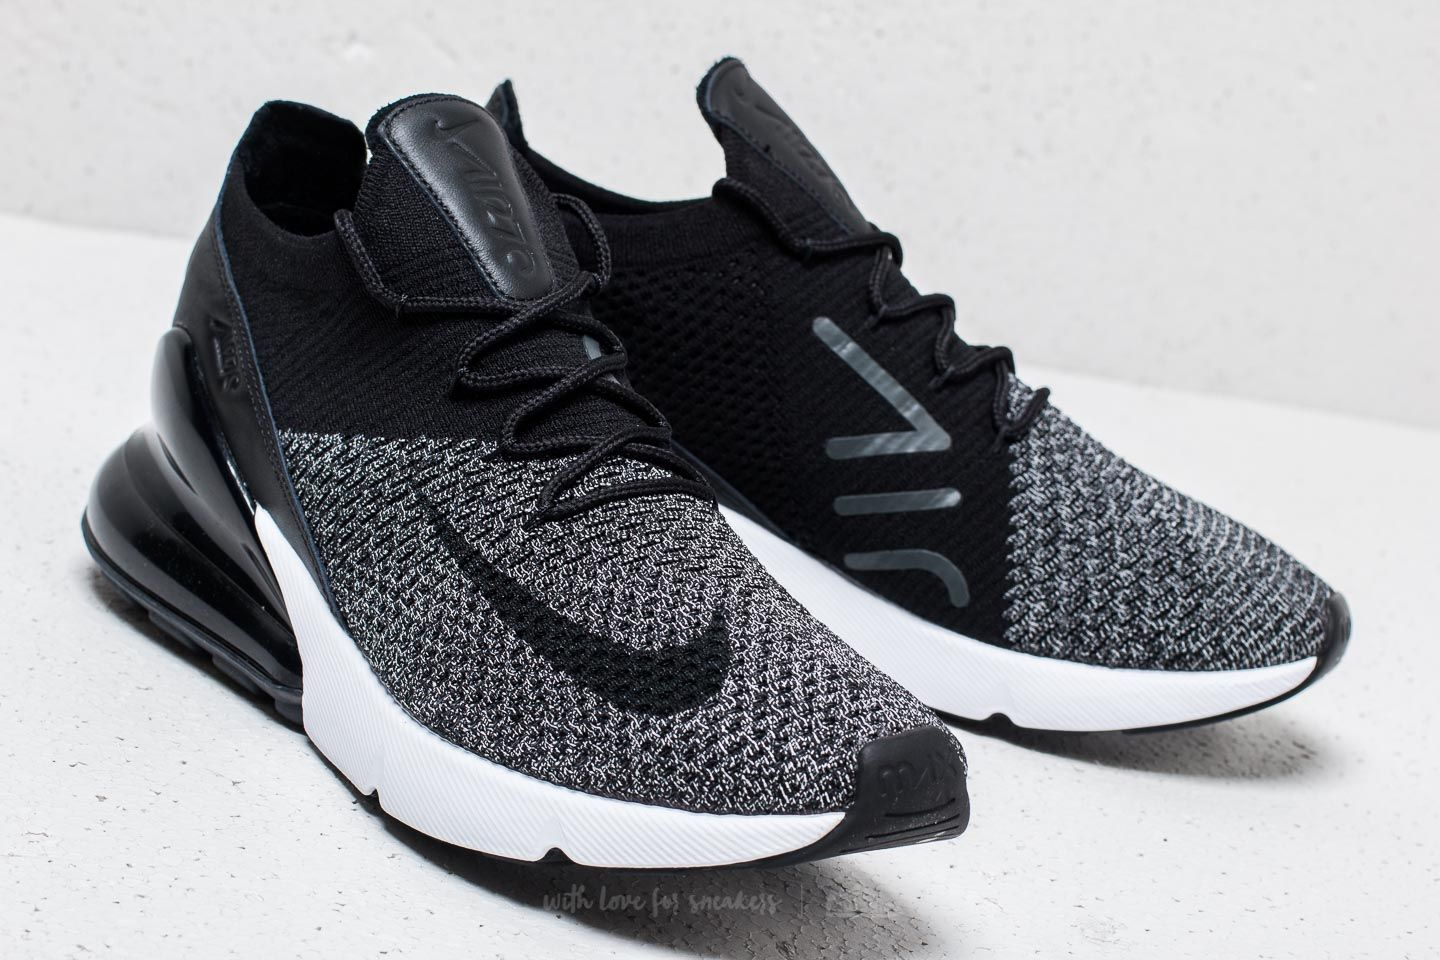 newest collection be6e6 22929 Nike Air Max 270 Flyknit Black/ Black-White | Footshop ...